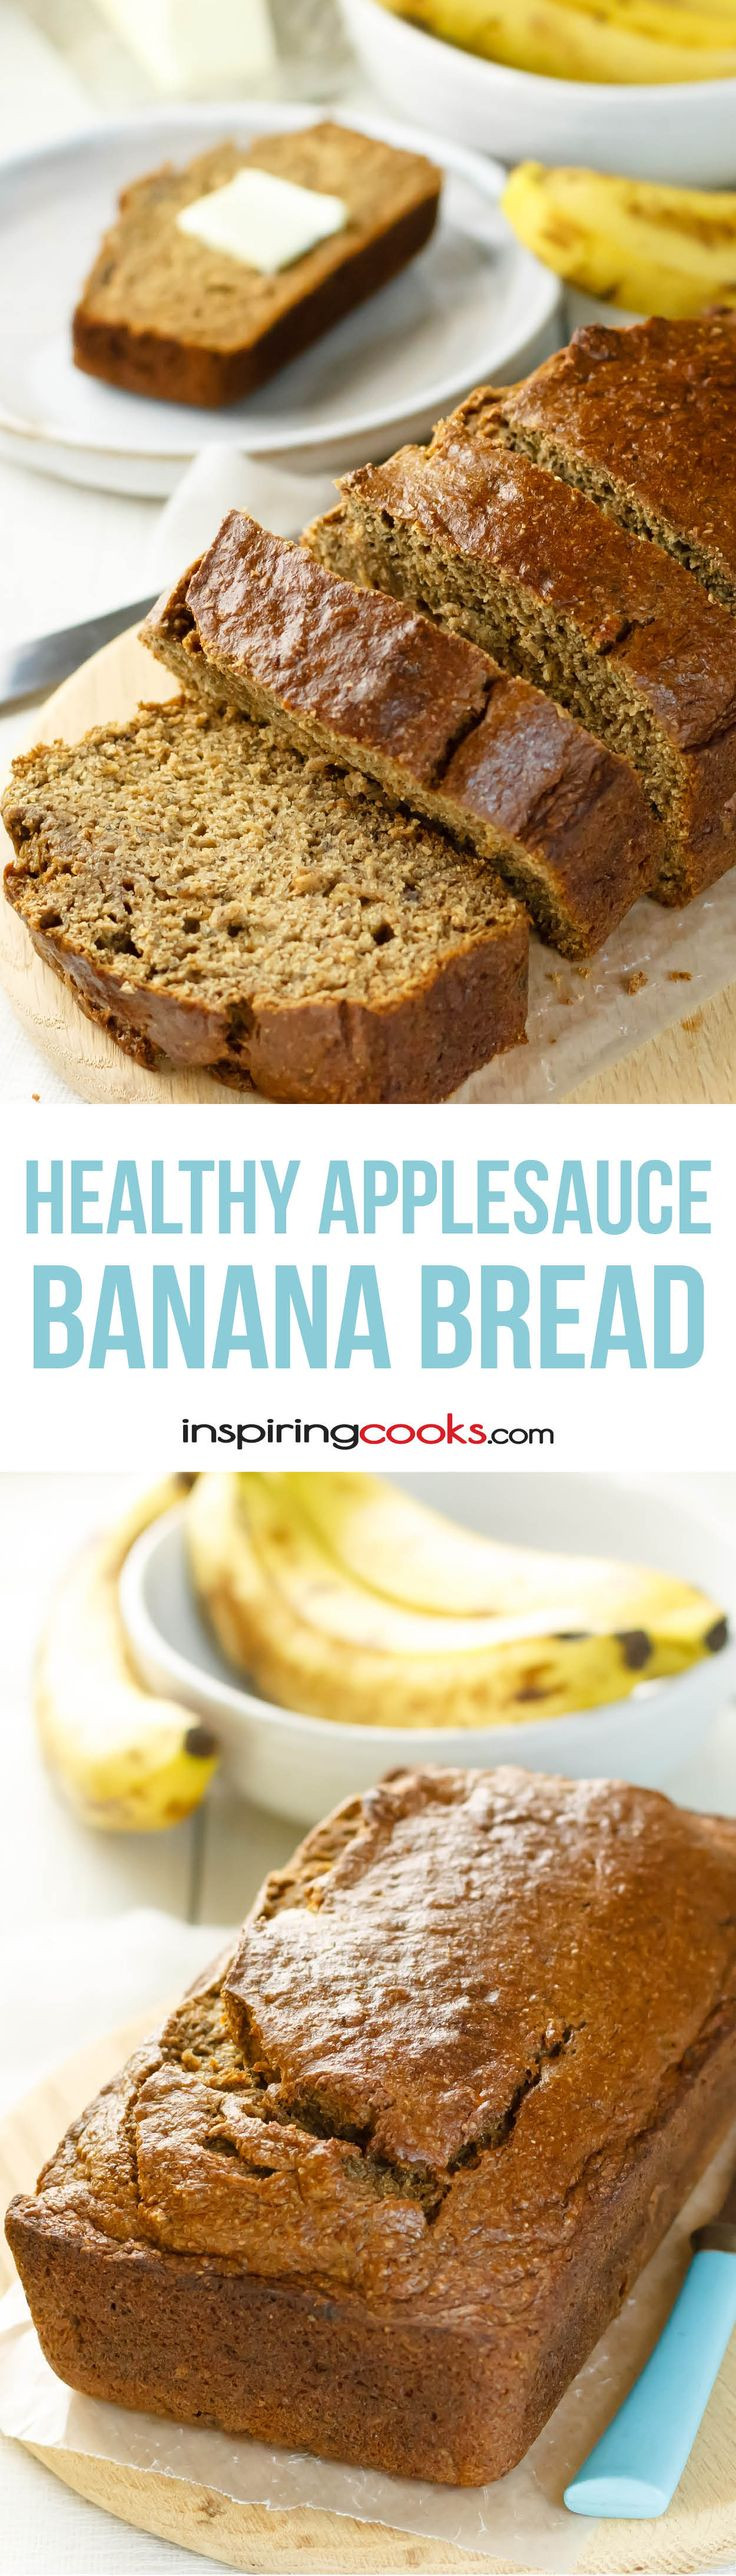 Applesauce Bread Healthy  Check out Healthy Banana Bread with Applesauce It s so